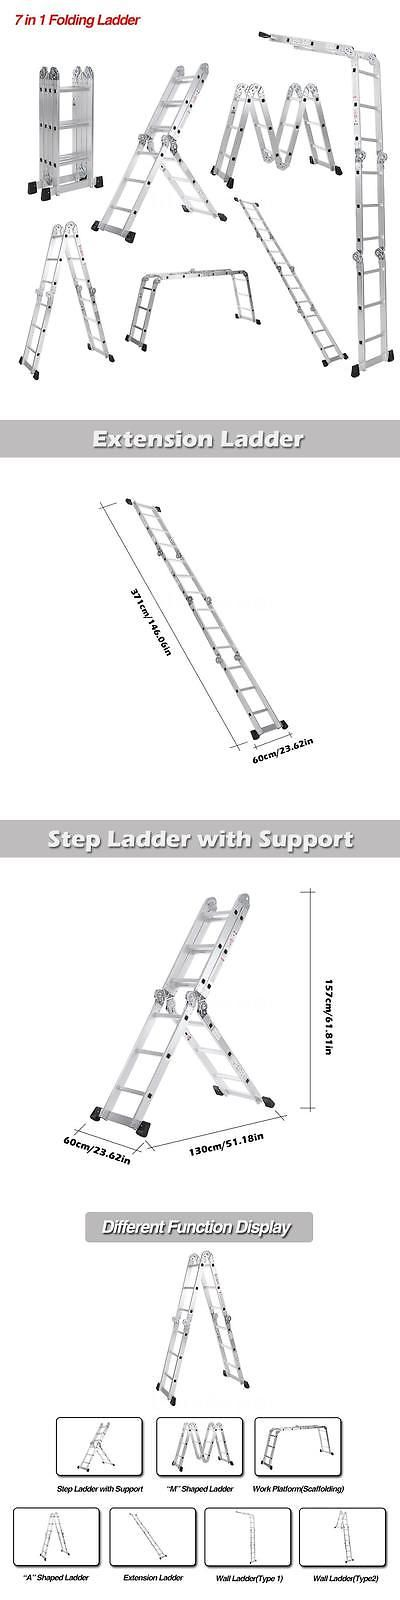 Ladders 112567: 12.5Ft 7 In 1 Step Ladder Scaffold Aluminum Extension Ladder Work Platform X3b0 -> BUY IT NOW ONLY: $69.92 on eBay!